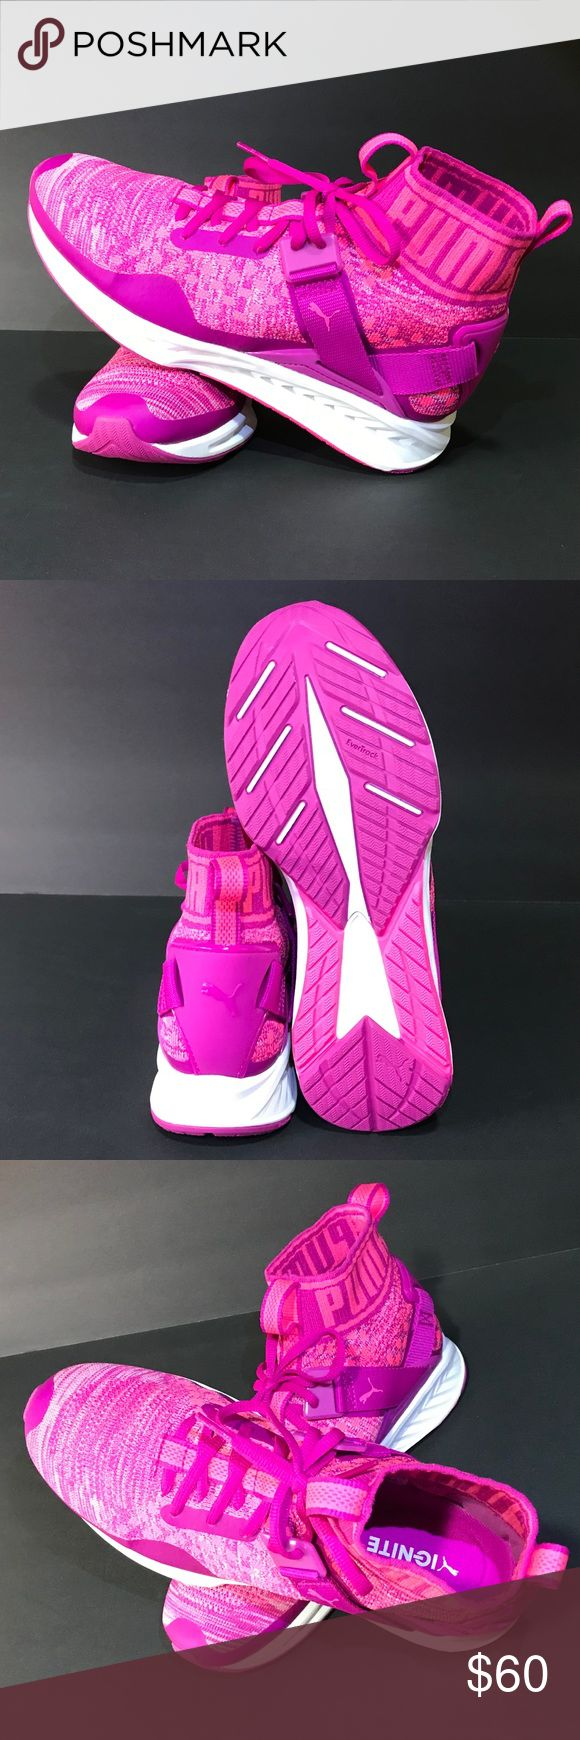 Puma Ignite Evoknit JR BRAND NEW!!! Puma Evoknit. Youth size 7/Women's size 9. Super comfy! Great for working out, running or just everyday! No box. Great buy!!! Puma Shoes Sneakers